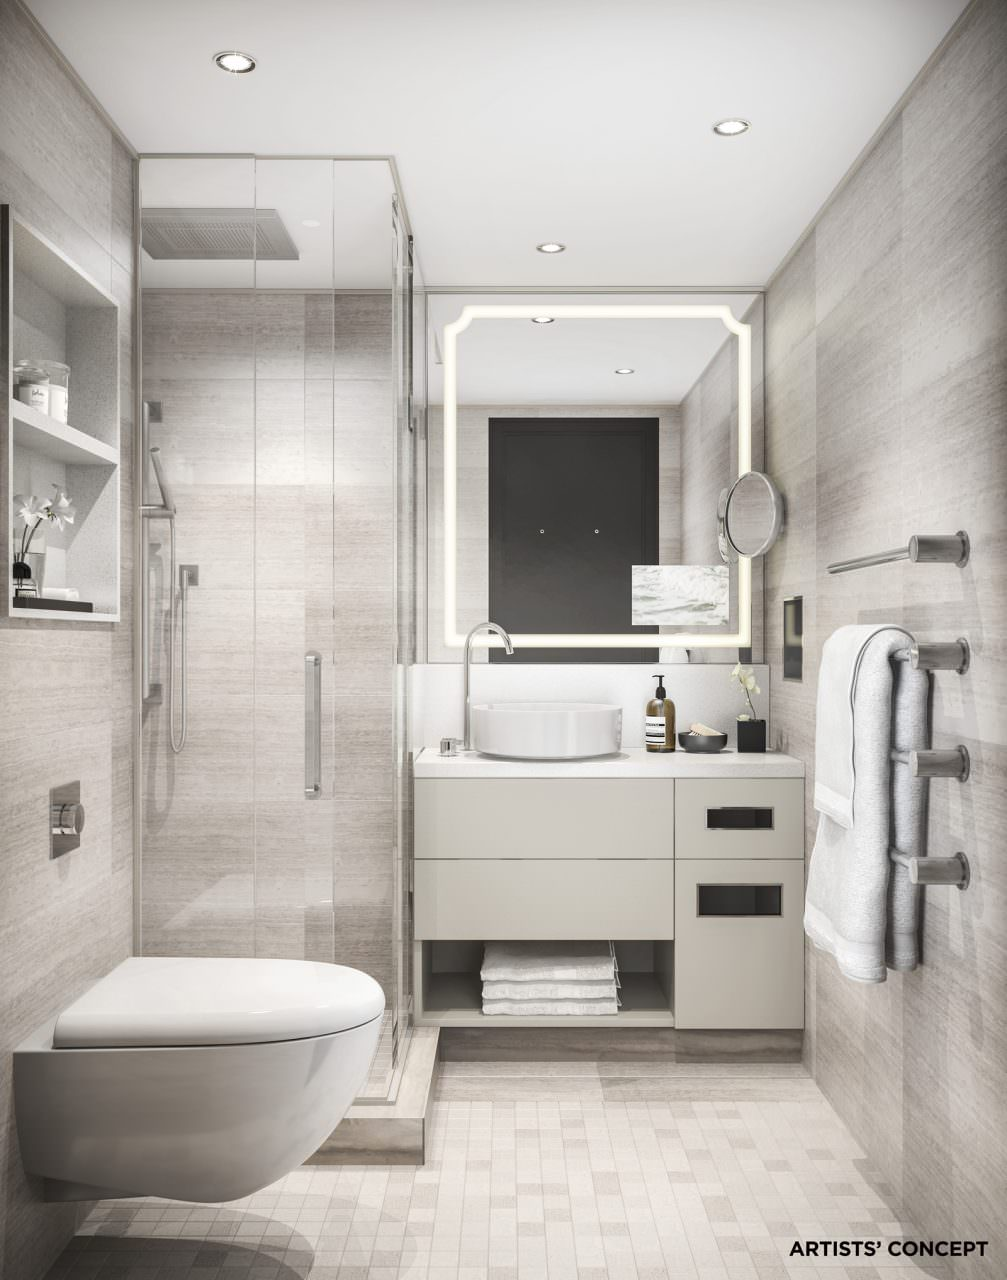 MOZ_S4-S1_BATHROOM